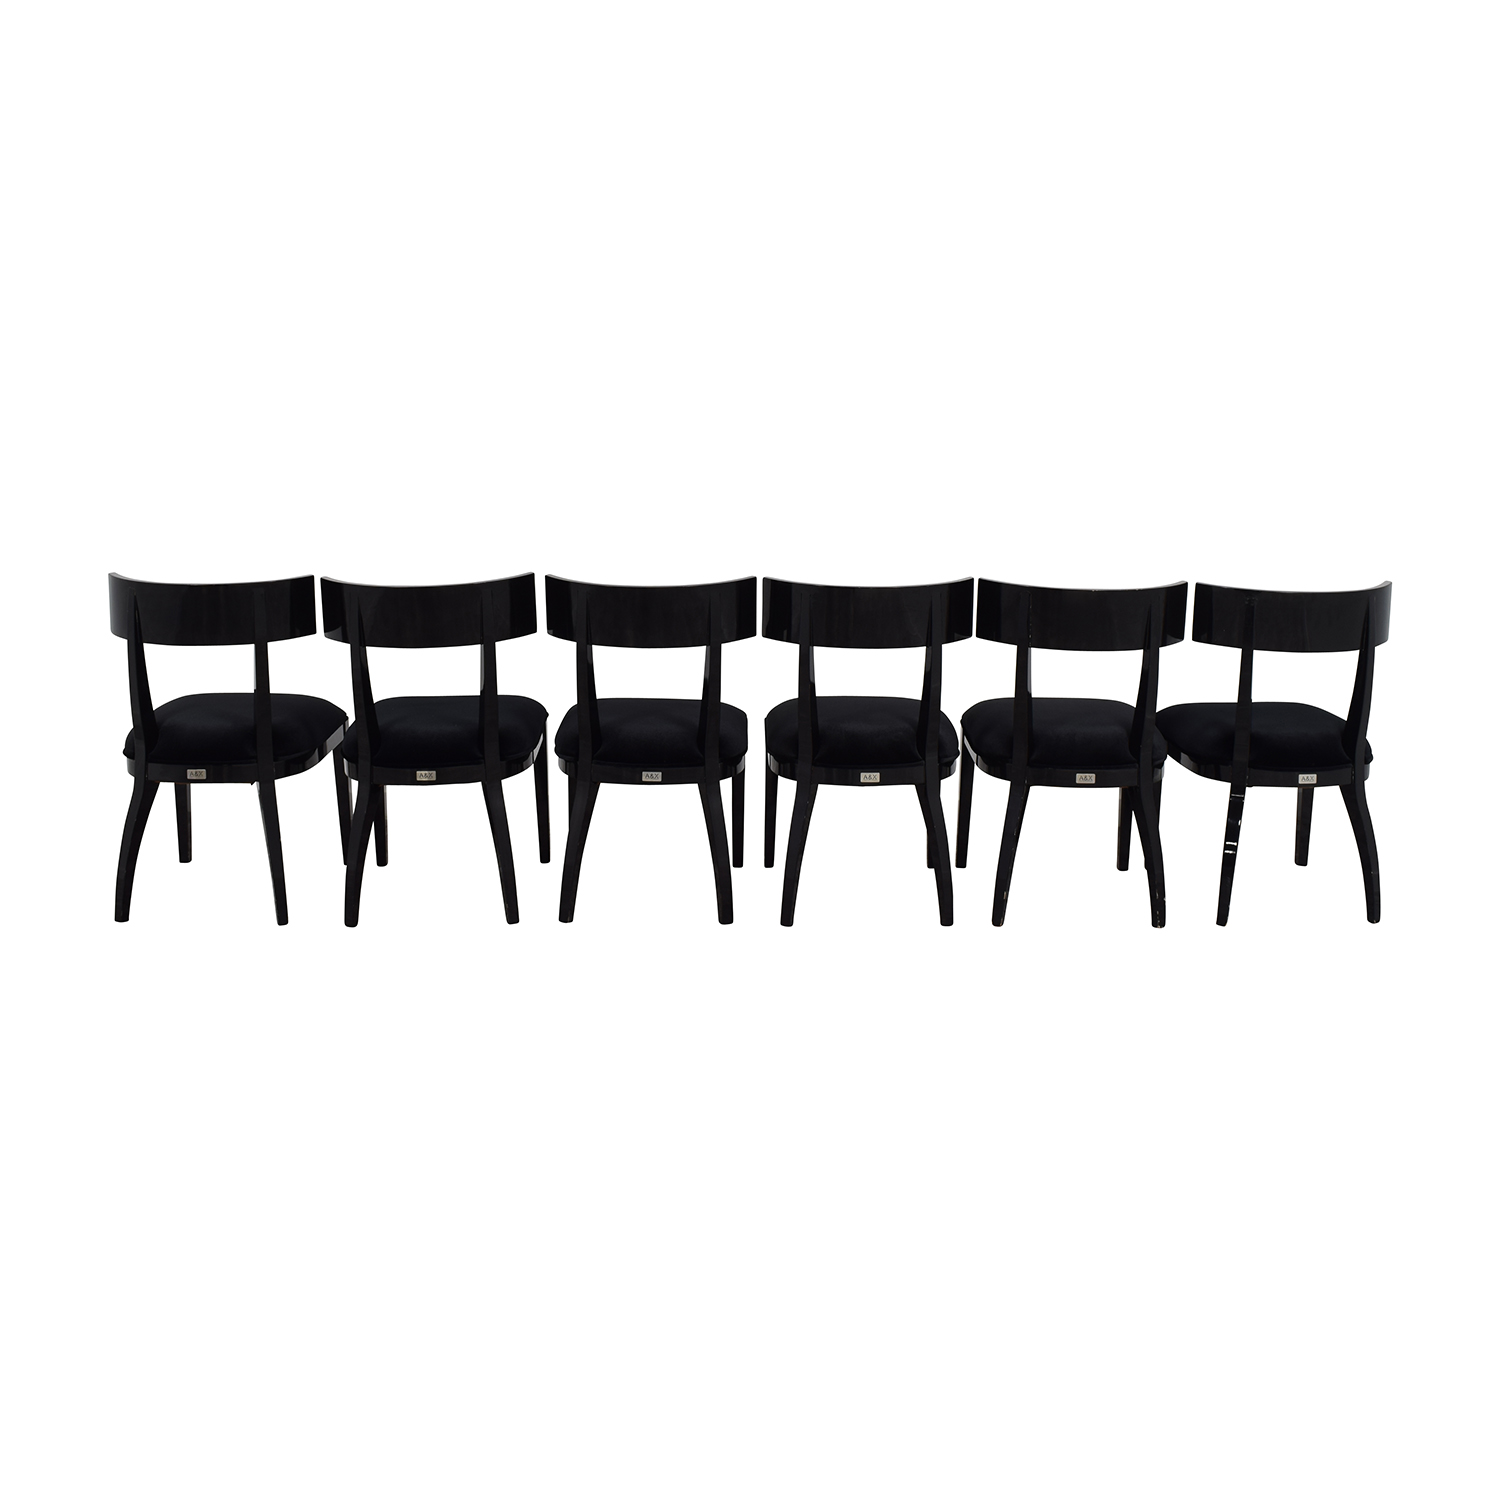 A & X Casa Luxury Collection Art Deco Black Dining Chairs Chairs